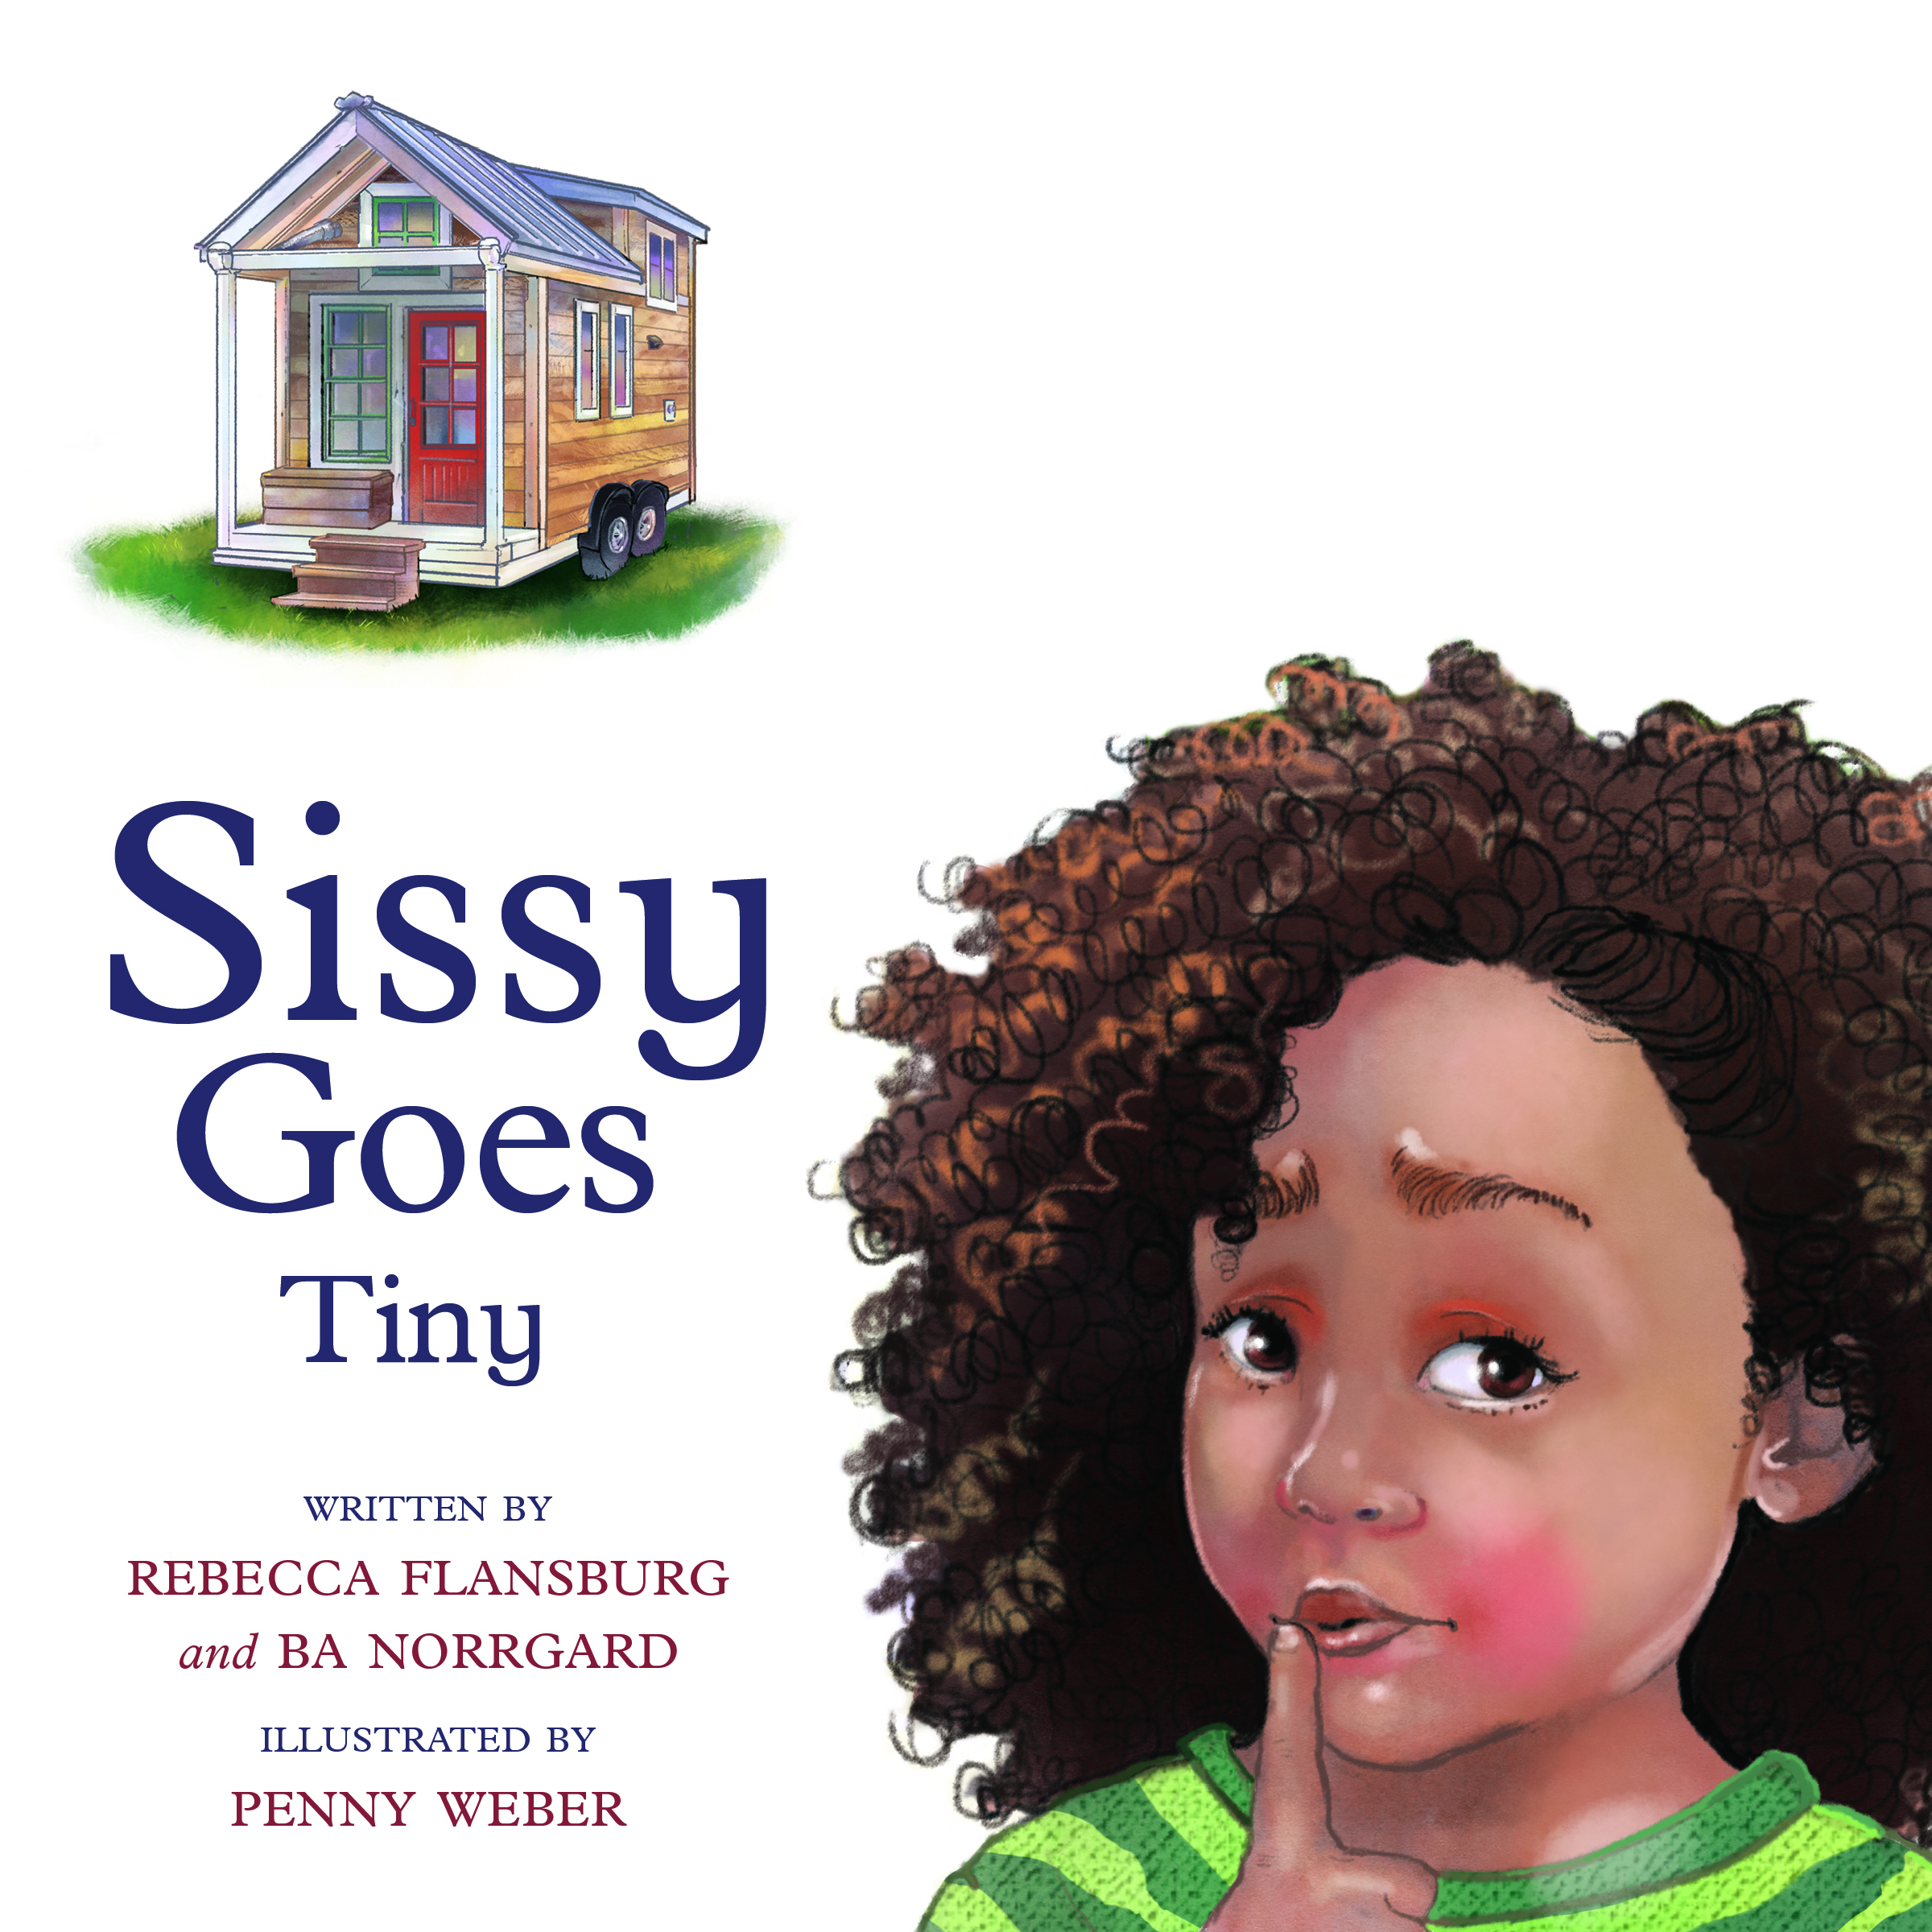 book cover of Sissy Goes Tiny with girl and Tiny house